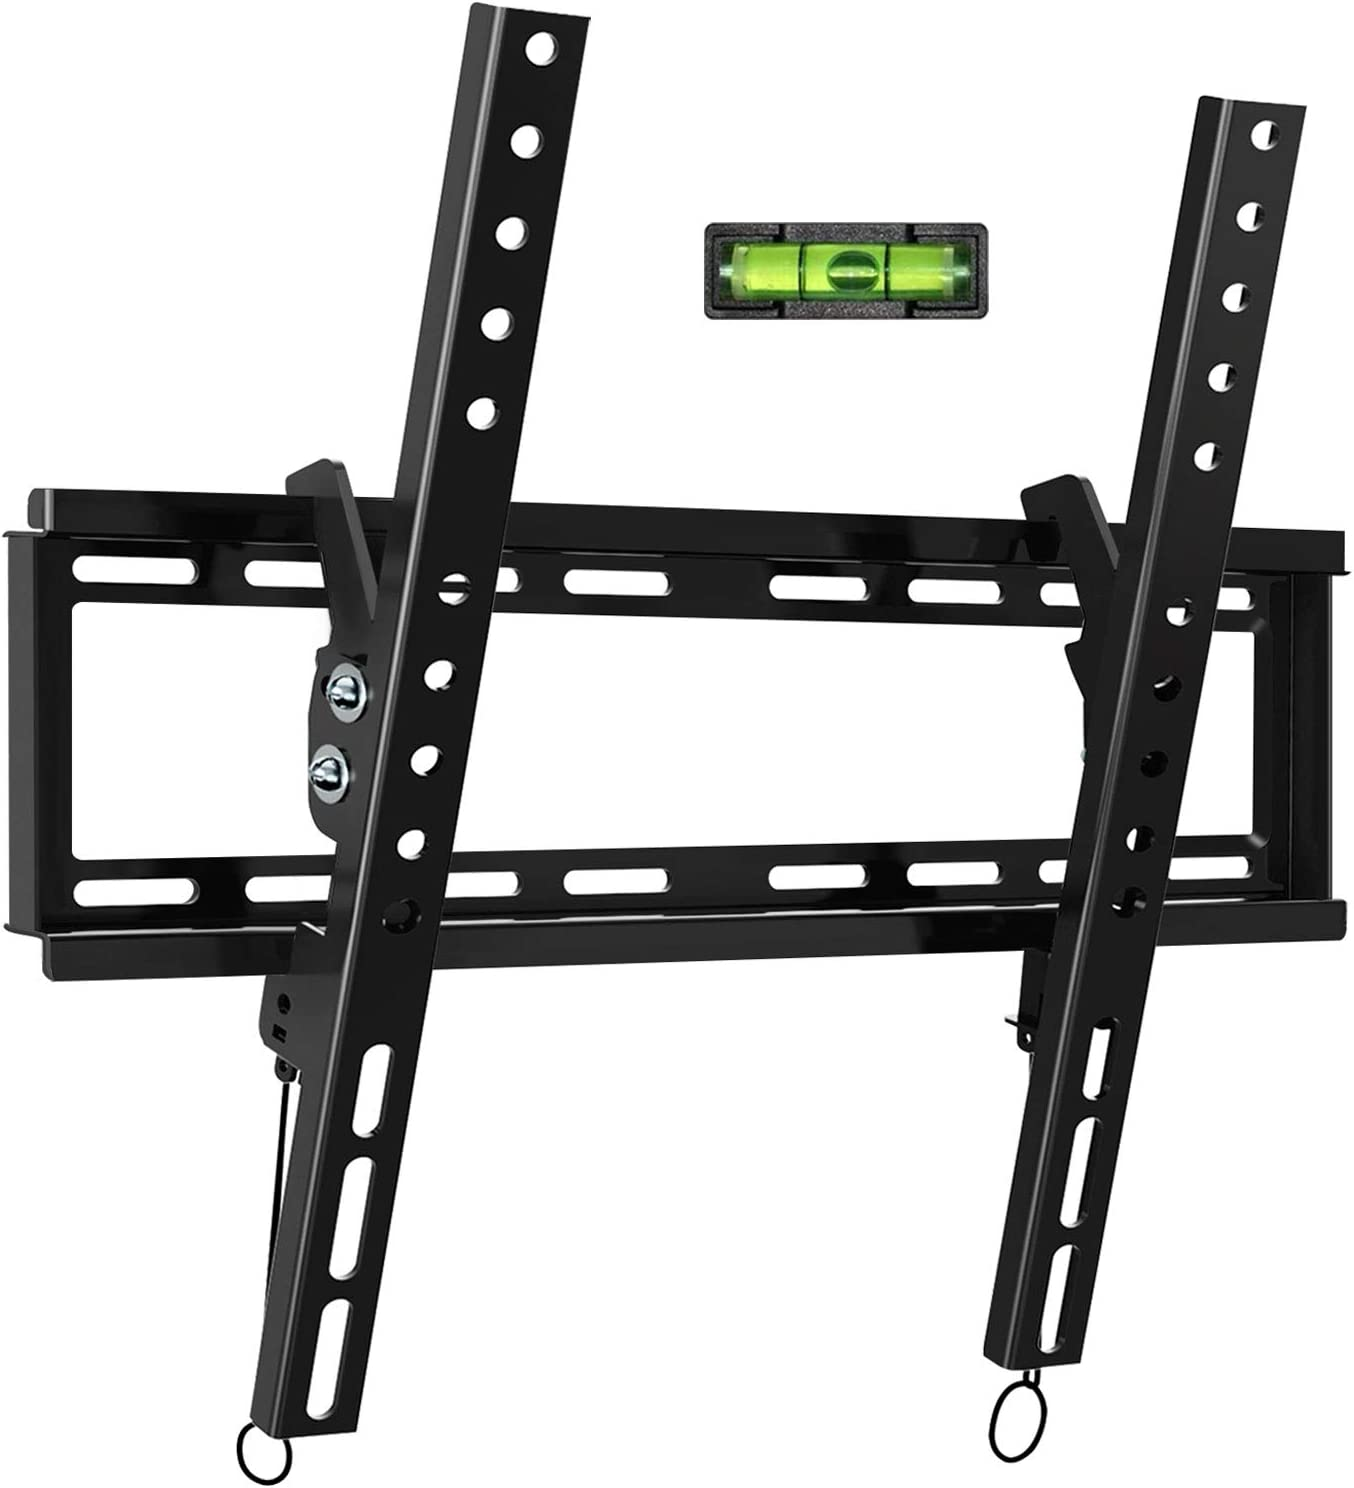 Tilt TV Wall Mount Bracket for Most 32-55 Inch Flat Screen, Curved TVs - BLUE STONE Universal TV Mount with VESA up 400x400mm,Loading Capacity 66 lbs, Fits 8